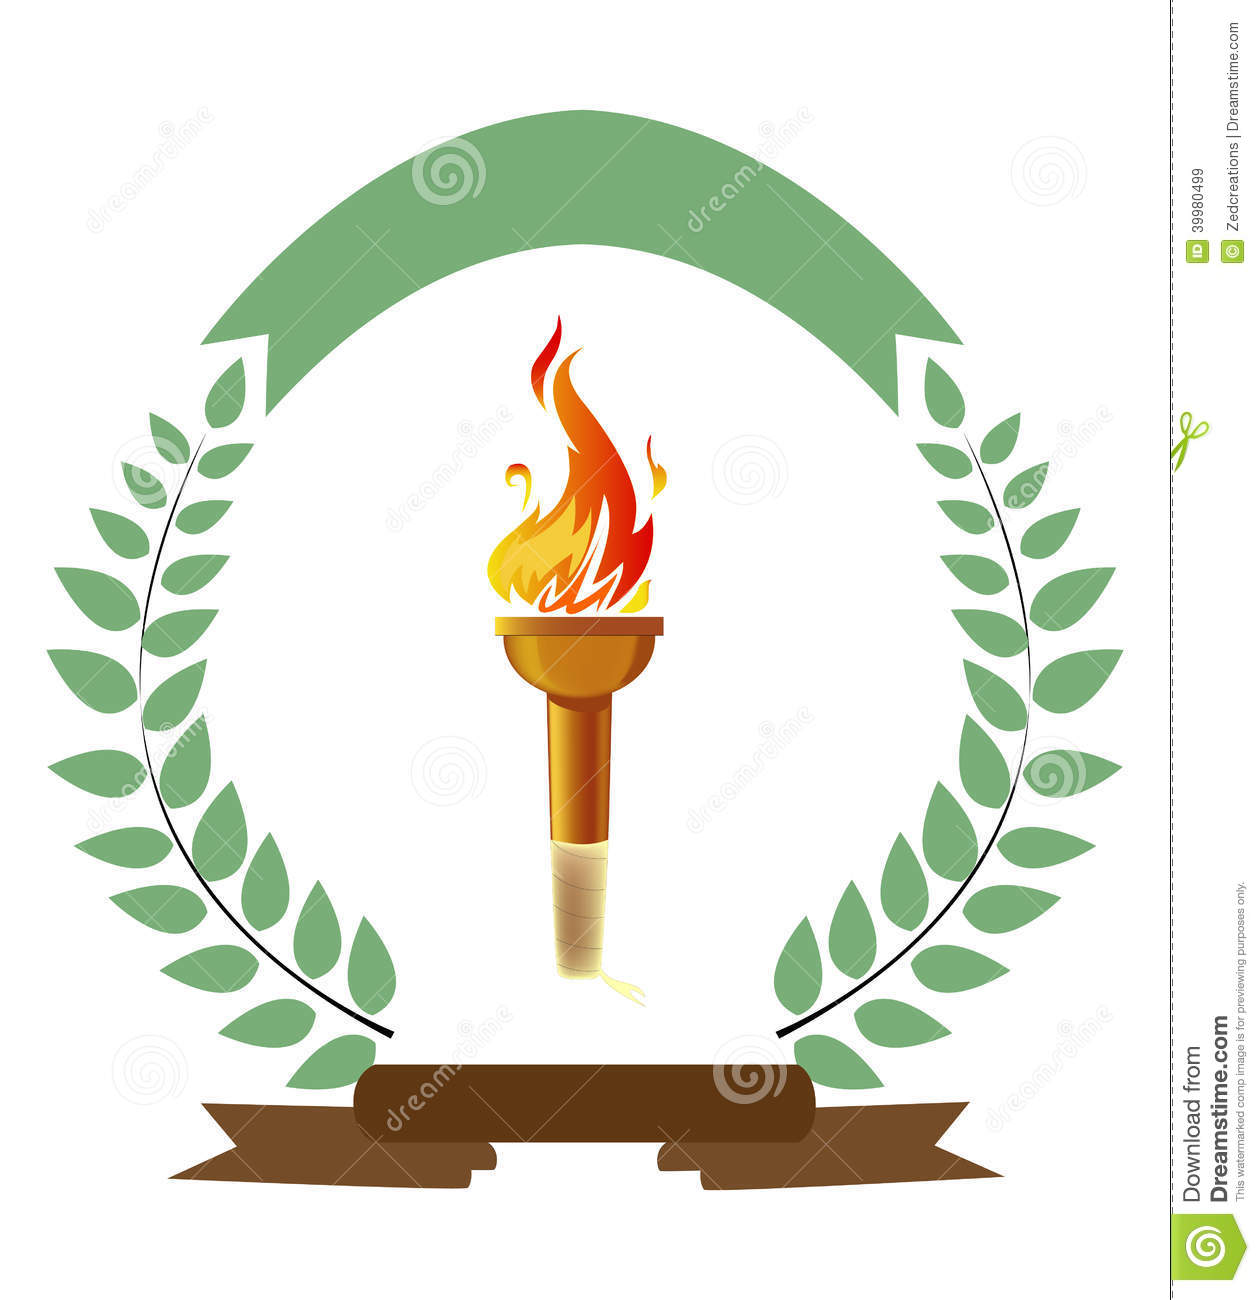 Olympic Torch stock vector. Illustration of event, champion - 39980499 for Olympic Torch Fire  268zmd